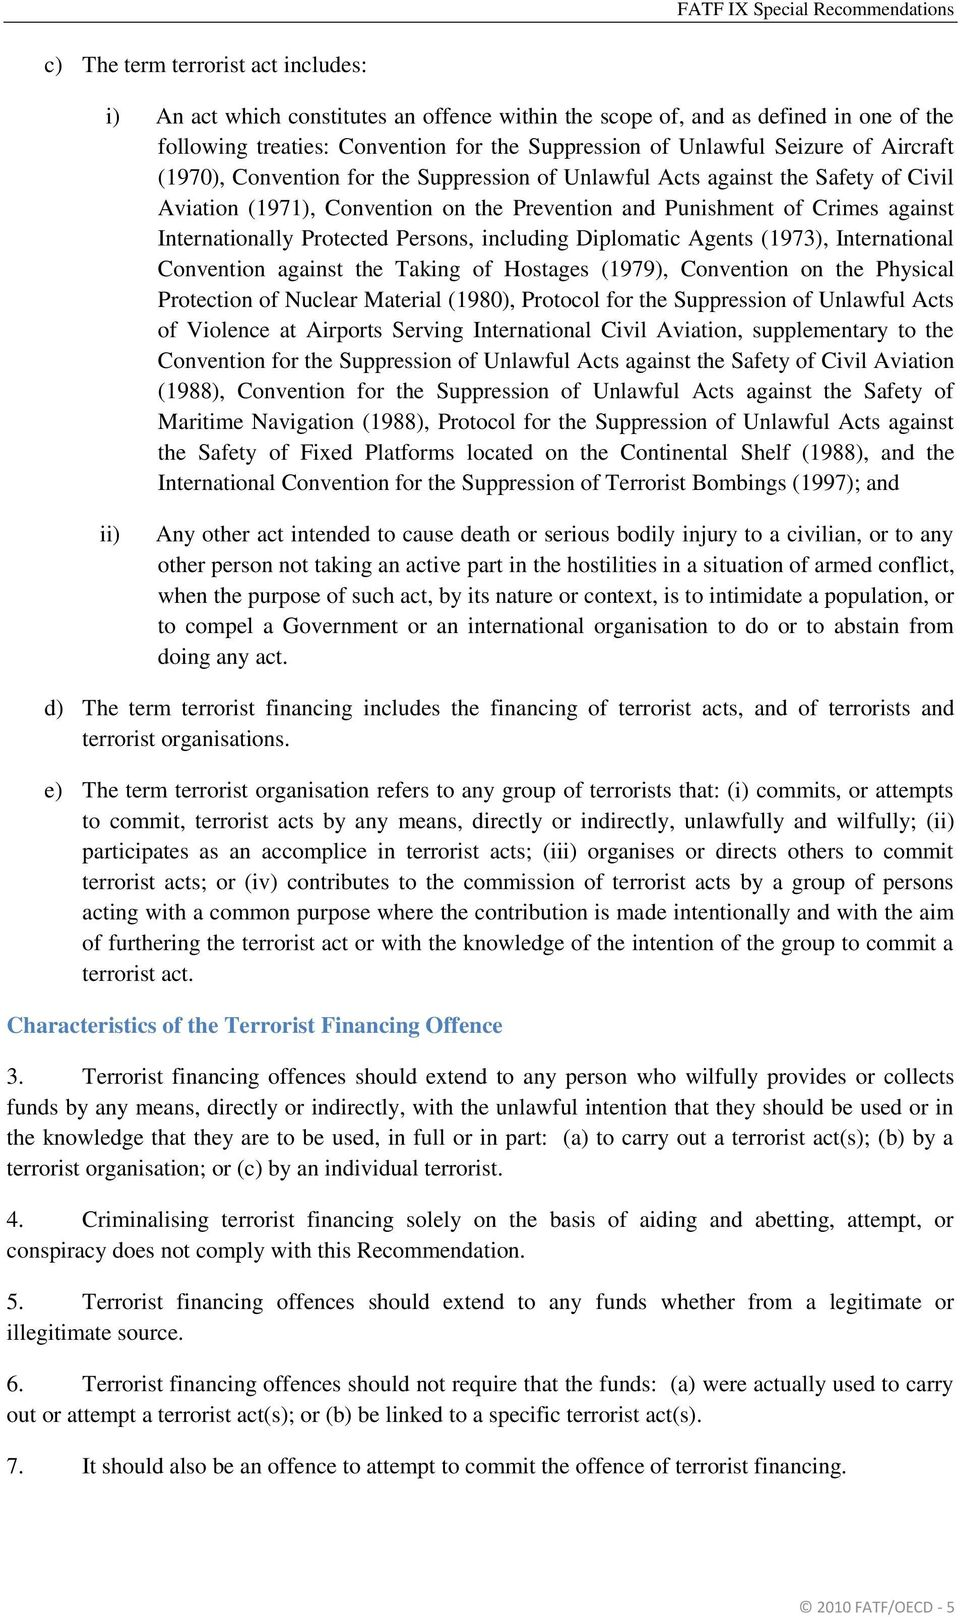 Persons, including Diplomatic Agents (1973), International Convention against the Taking of Hostages (1979), Convention on the Physical Protection of Nuclear Material (1980), Protocol for the